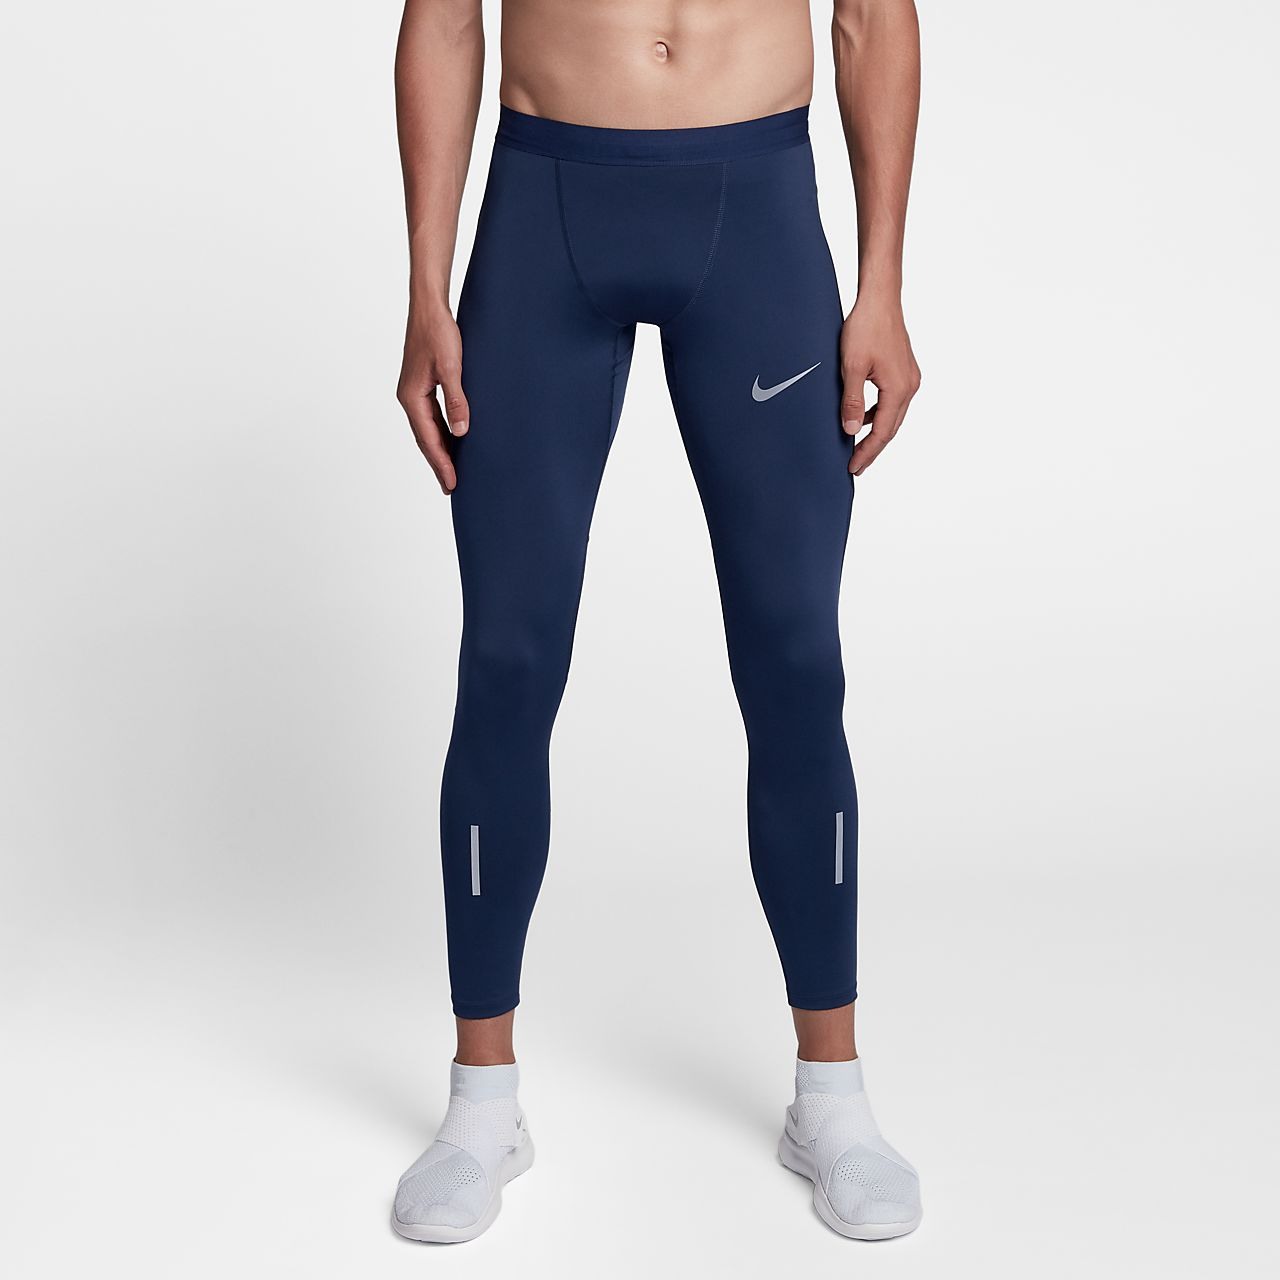 men's lightweight running tights Super lightweight tights that wick sweat away are ideal for racking up mileage, free of distraction. A variety of adidas men's tights come in SPRINTWEB compression design with strategic prints that support muscles during endurance runs.